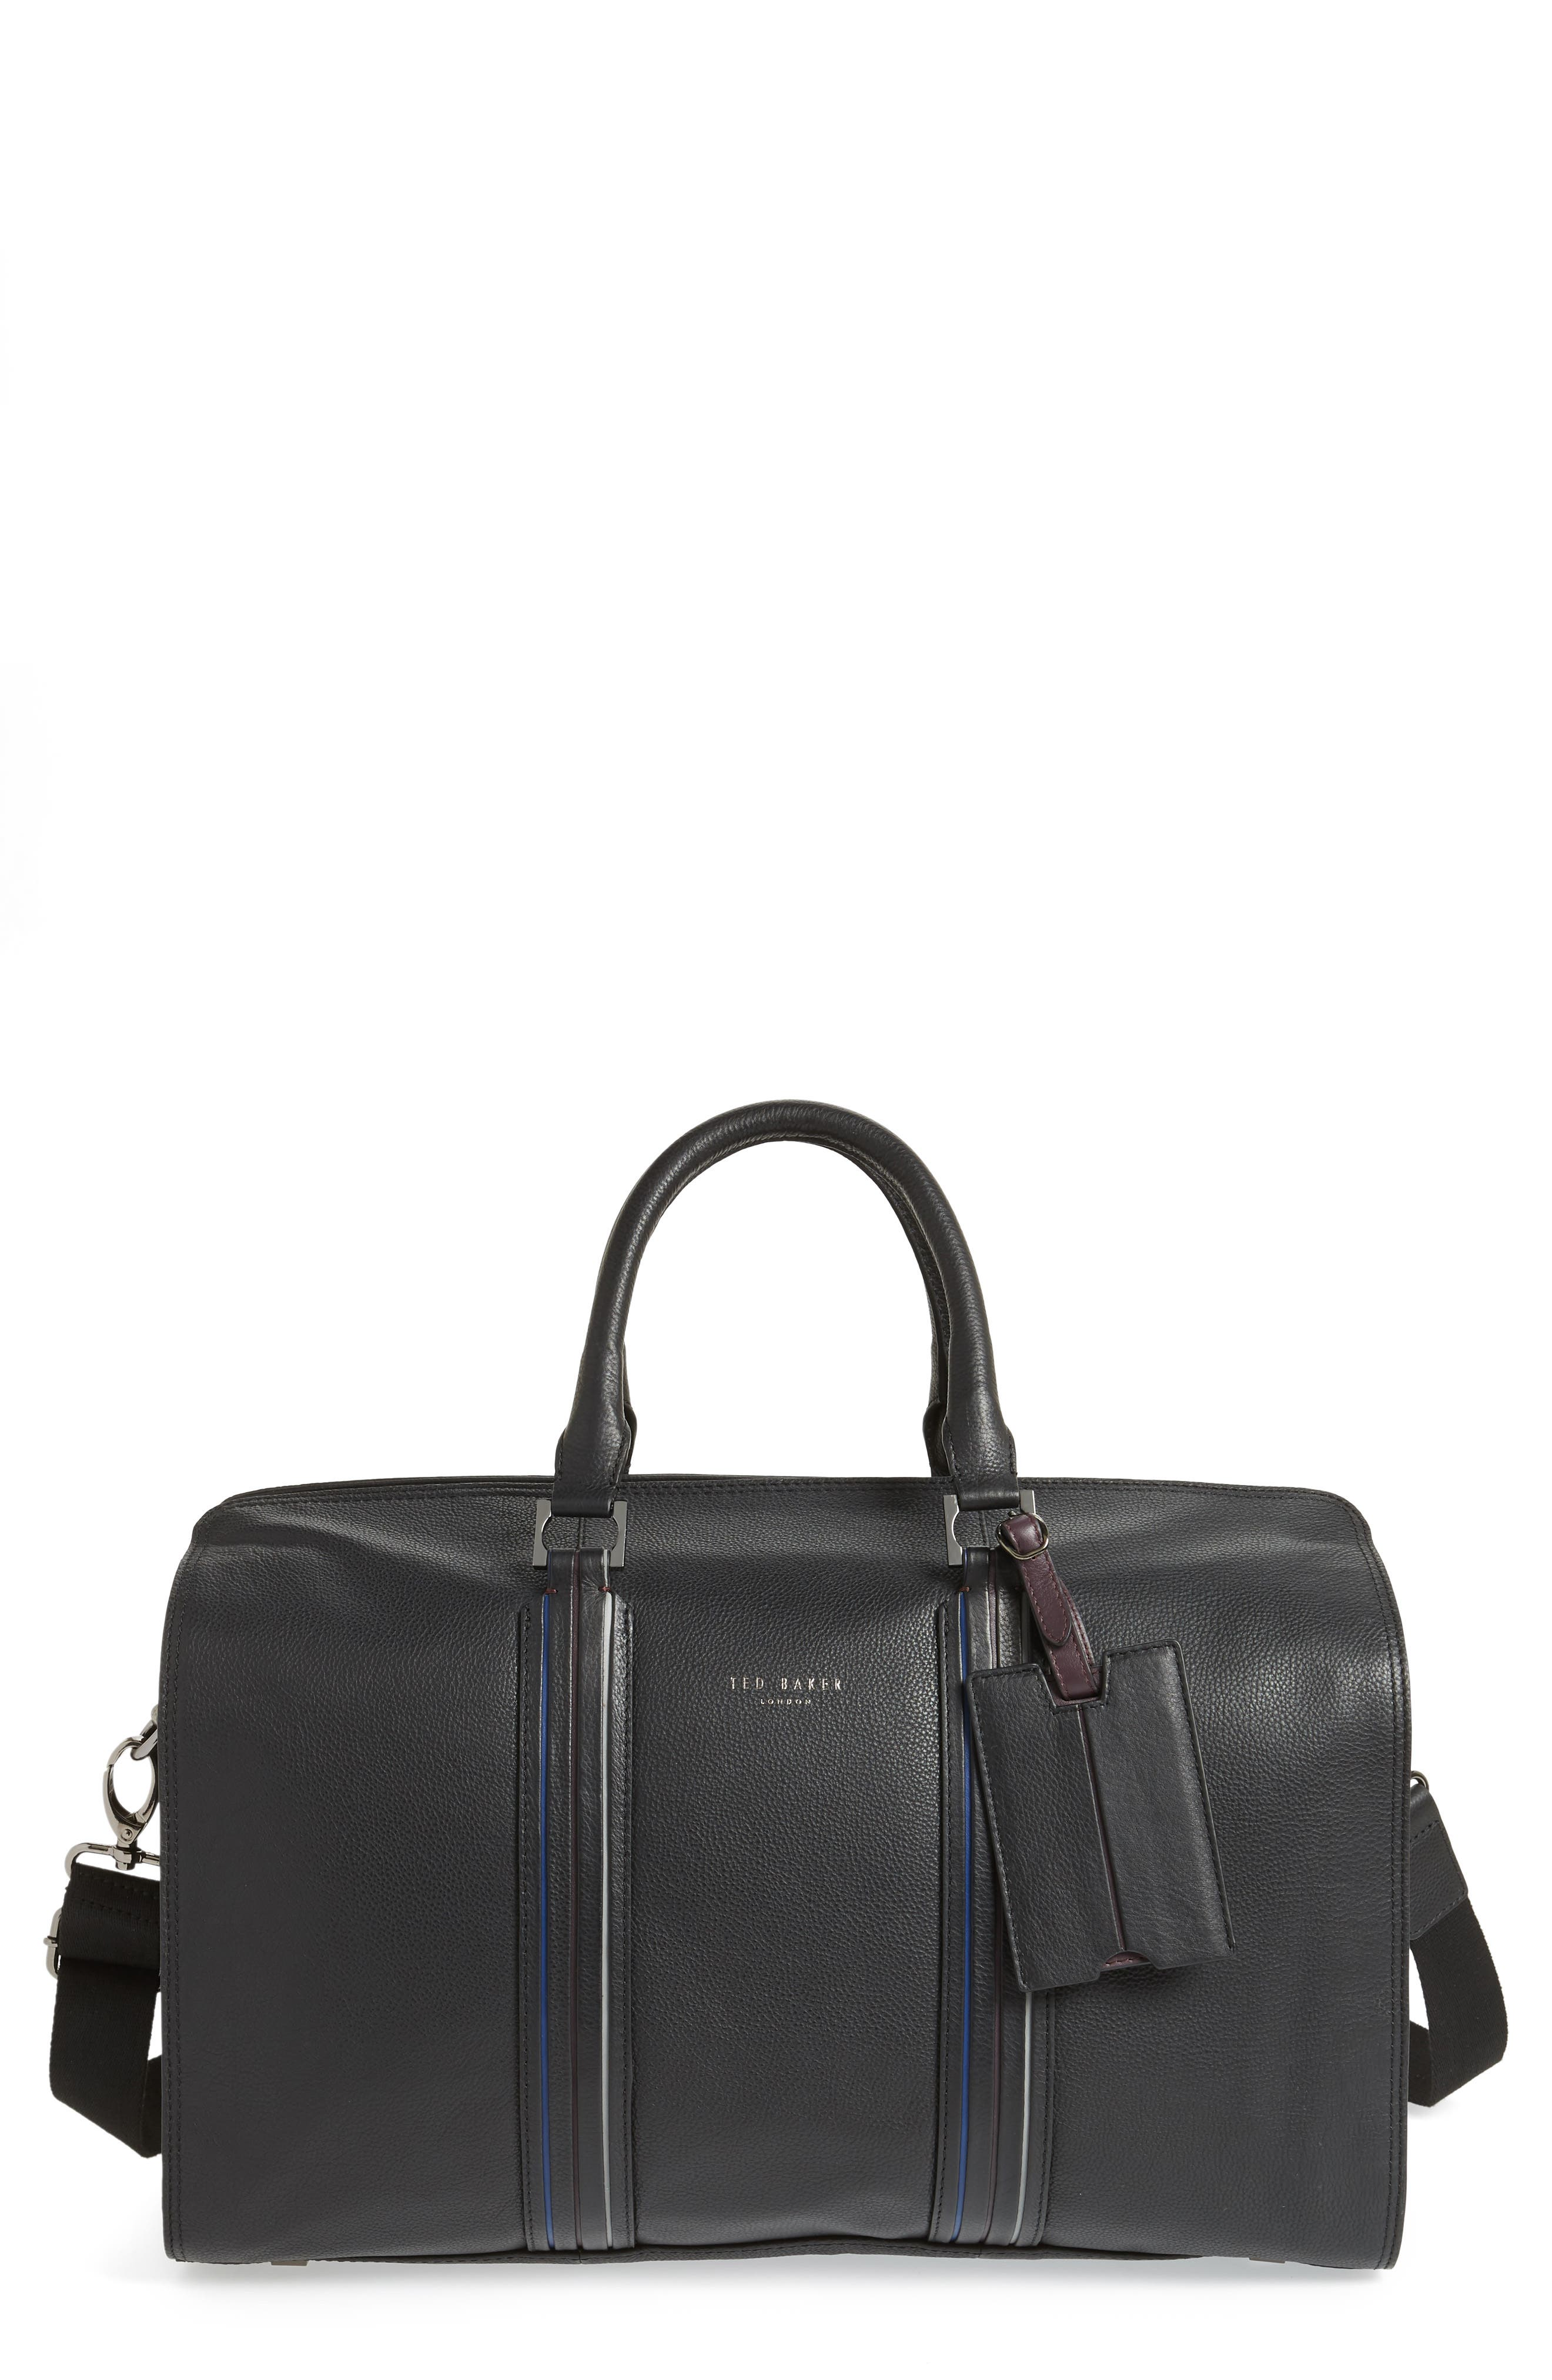 Geeves Stripe Leather Duffel Bag,                         Main,                         color, Black